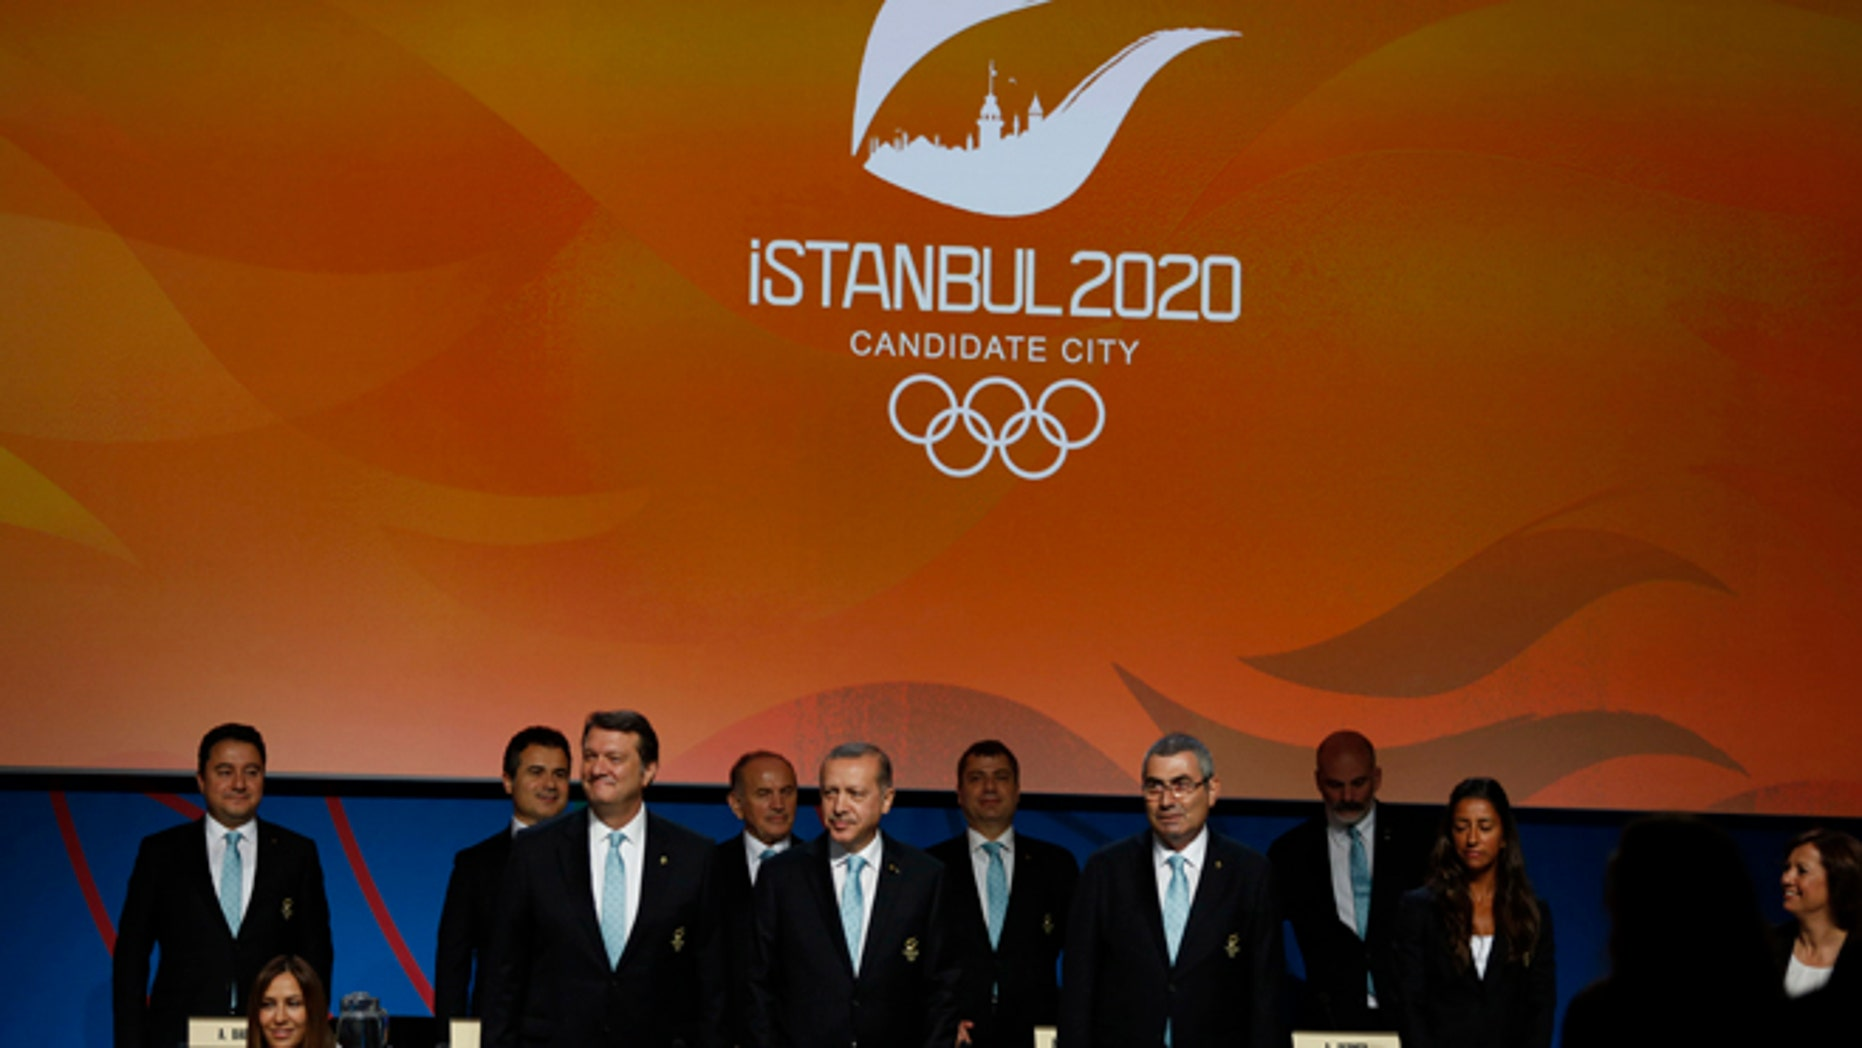 Turkey's delegation arrives to the Istanbul 2020 bid presentation during the International Olympic Committee session, Saturday, Sept. 7, 2013, in Buenos Aires, Argentina. Madrid, Istanbul and Tokyo are competing to host the 2020 Summer Olympic Games. (AP Photo/Natacha Pisarenko)